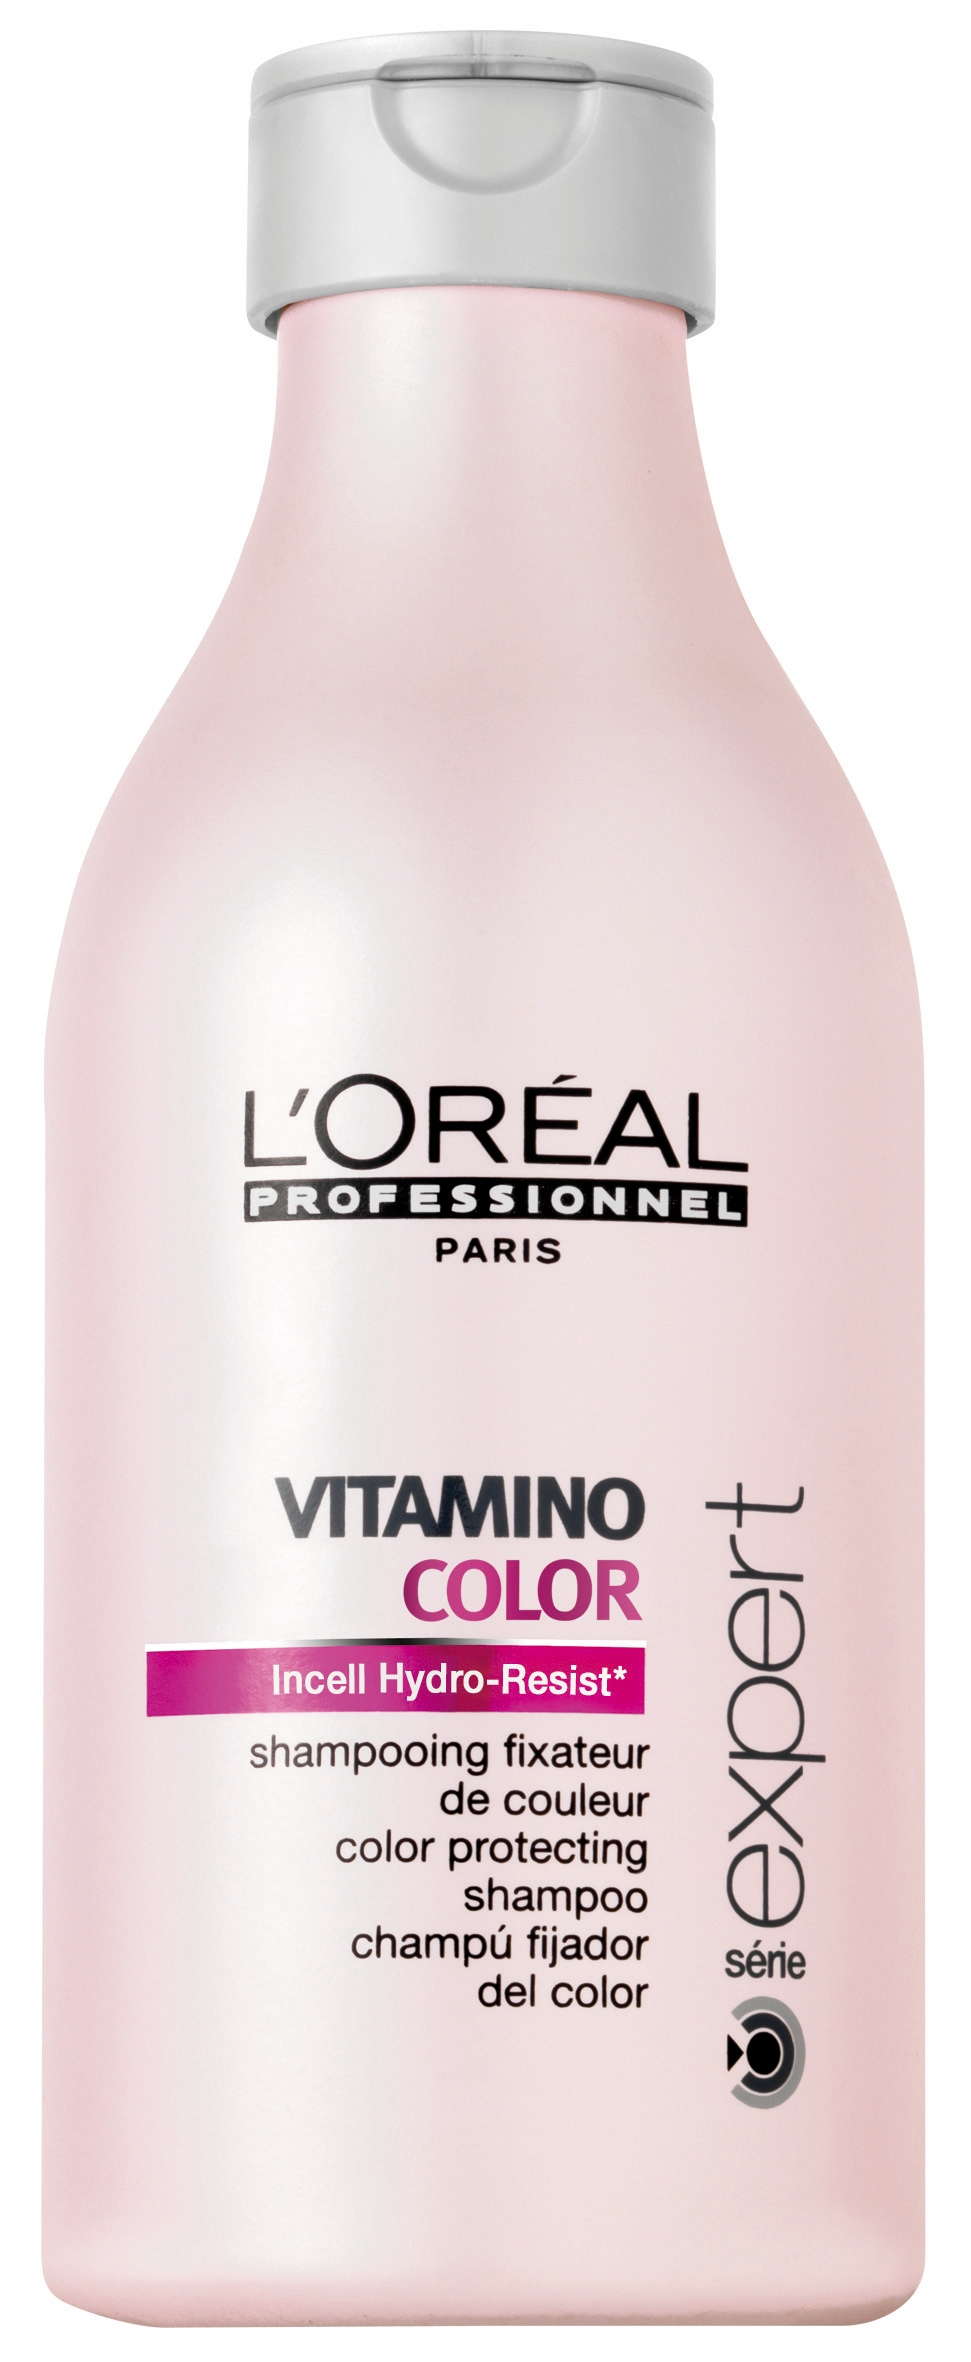 Vitamino Color A-ox Colour Protecting Shampoo